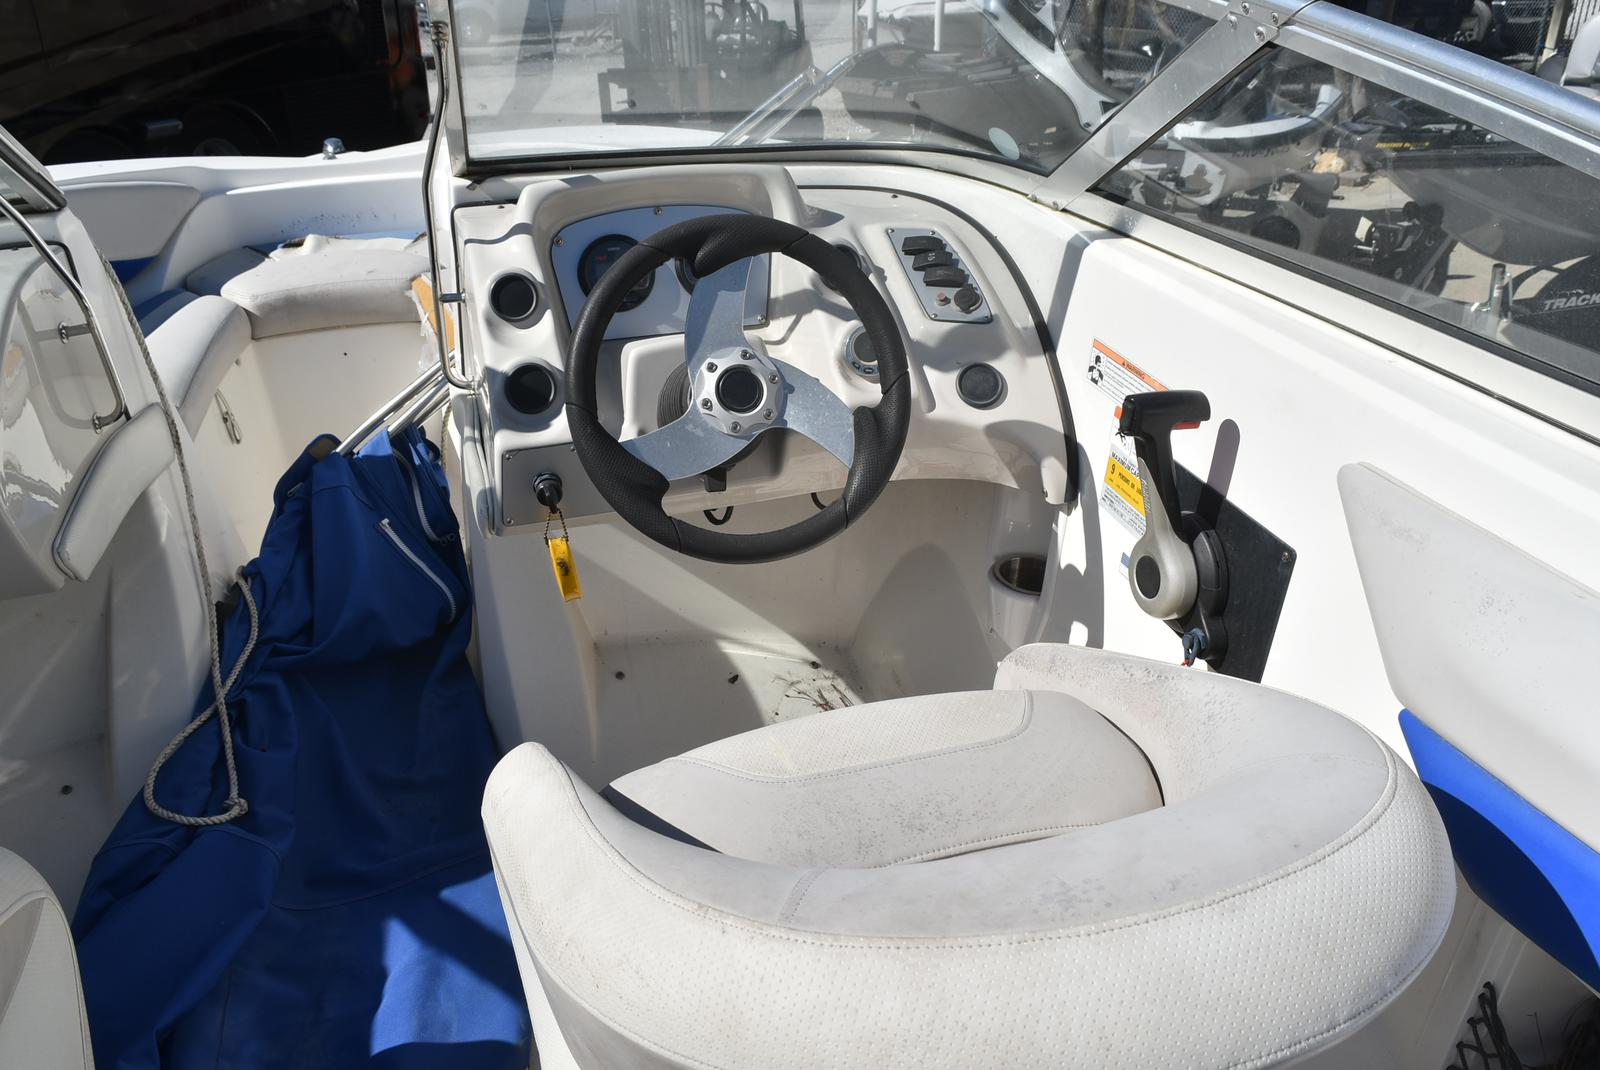 2007 Larson boat for sale, model of the boat is Senza 186 & Image # 11 of 15